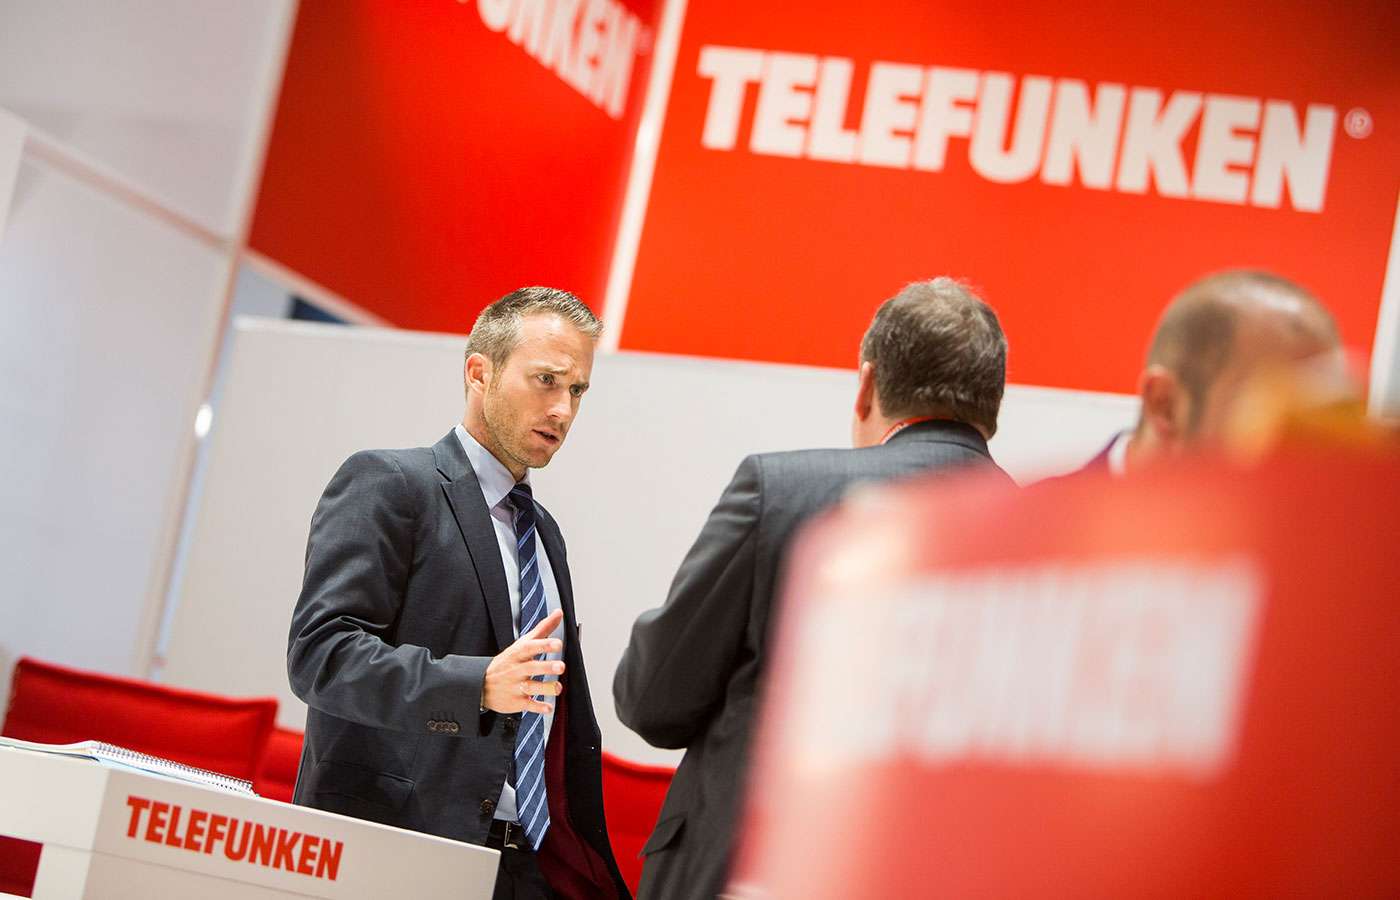 Telefunken – IFA 2015 in Berlin